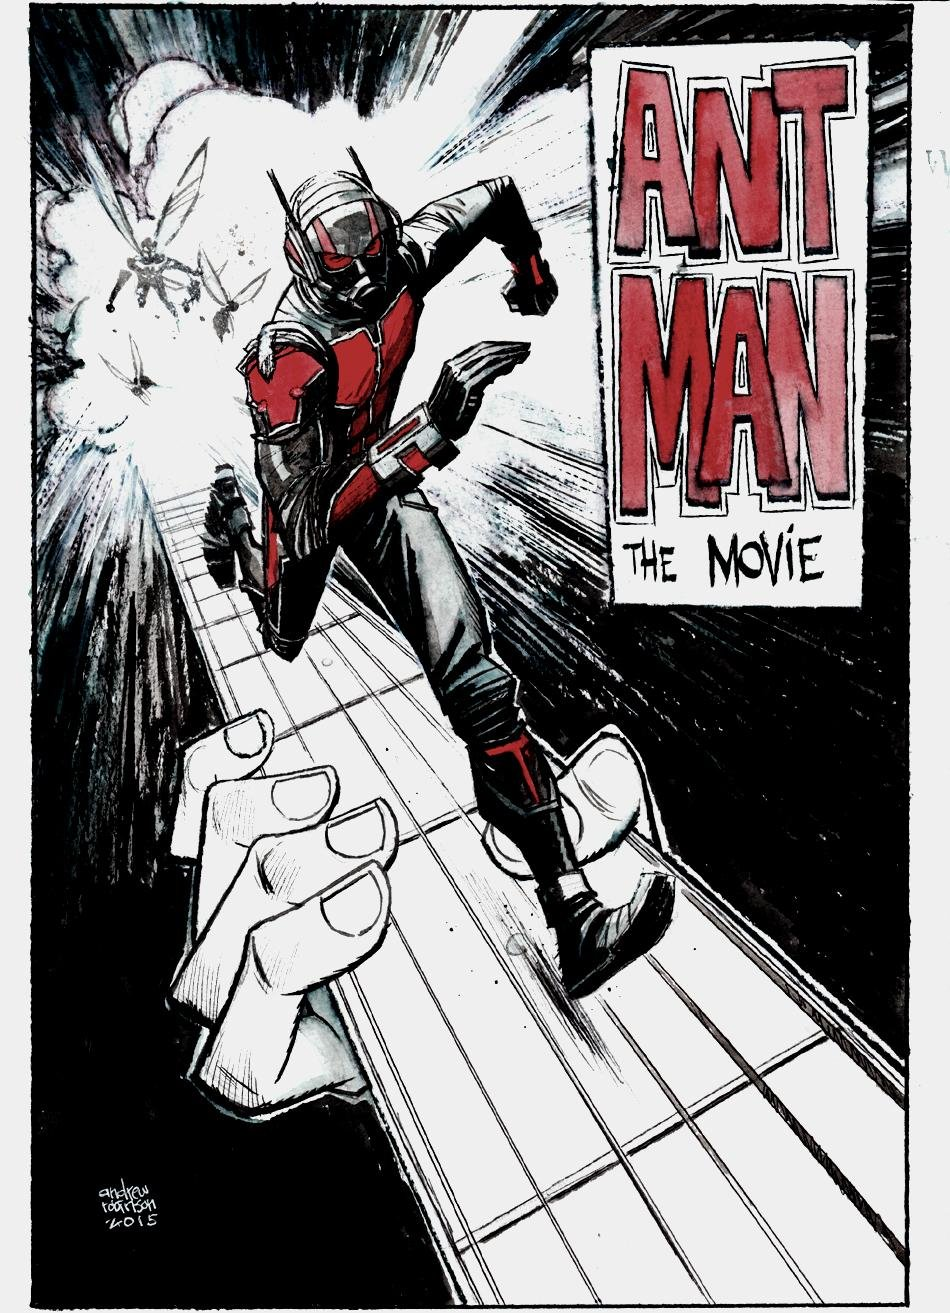 Ant-Man Movie Pinup (SOLD LIVE ON 'DUELING DEALERS OF COMIC ART' EPISODE #22 PODCAST ON 6-16-2021 (RE-WATCH THIS FUNNY ART SELLING SHOW HERE)